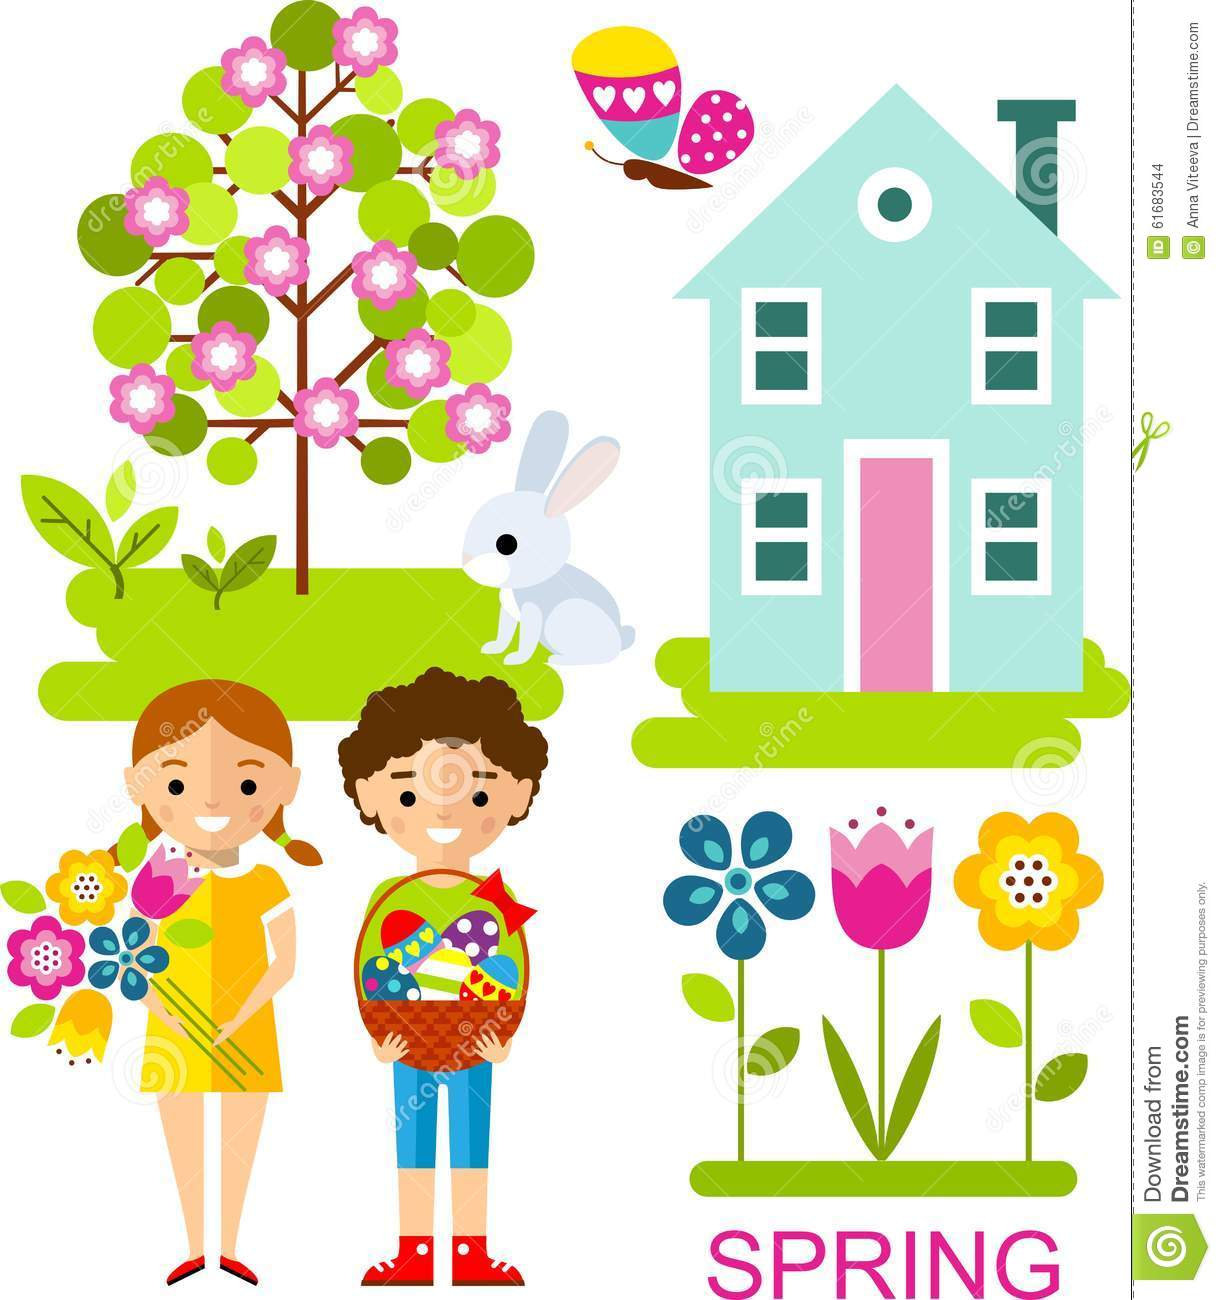 spring season for kids 30 high quality spring worksheets for kids that are completely free we have a nice variety to choose from for kids of different ages and focussed on different subjects.